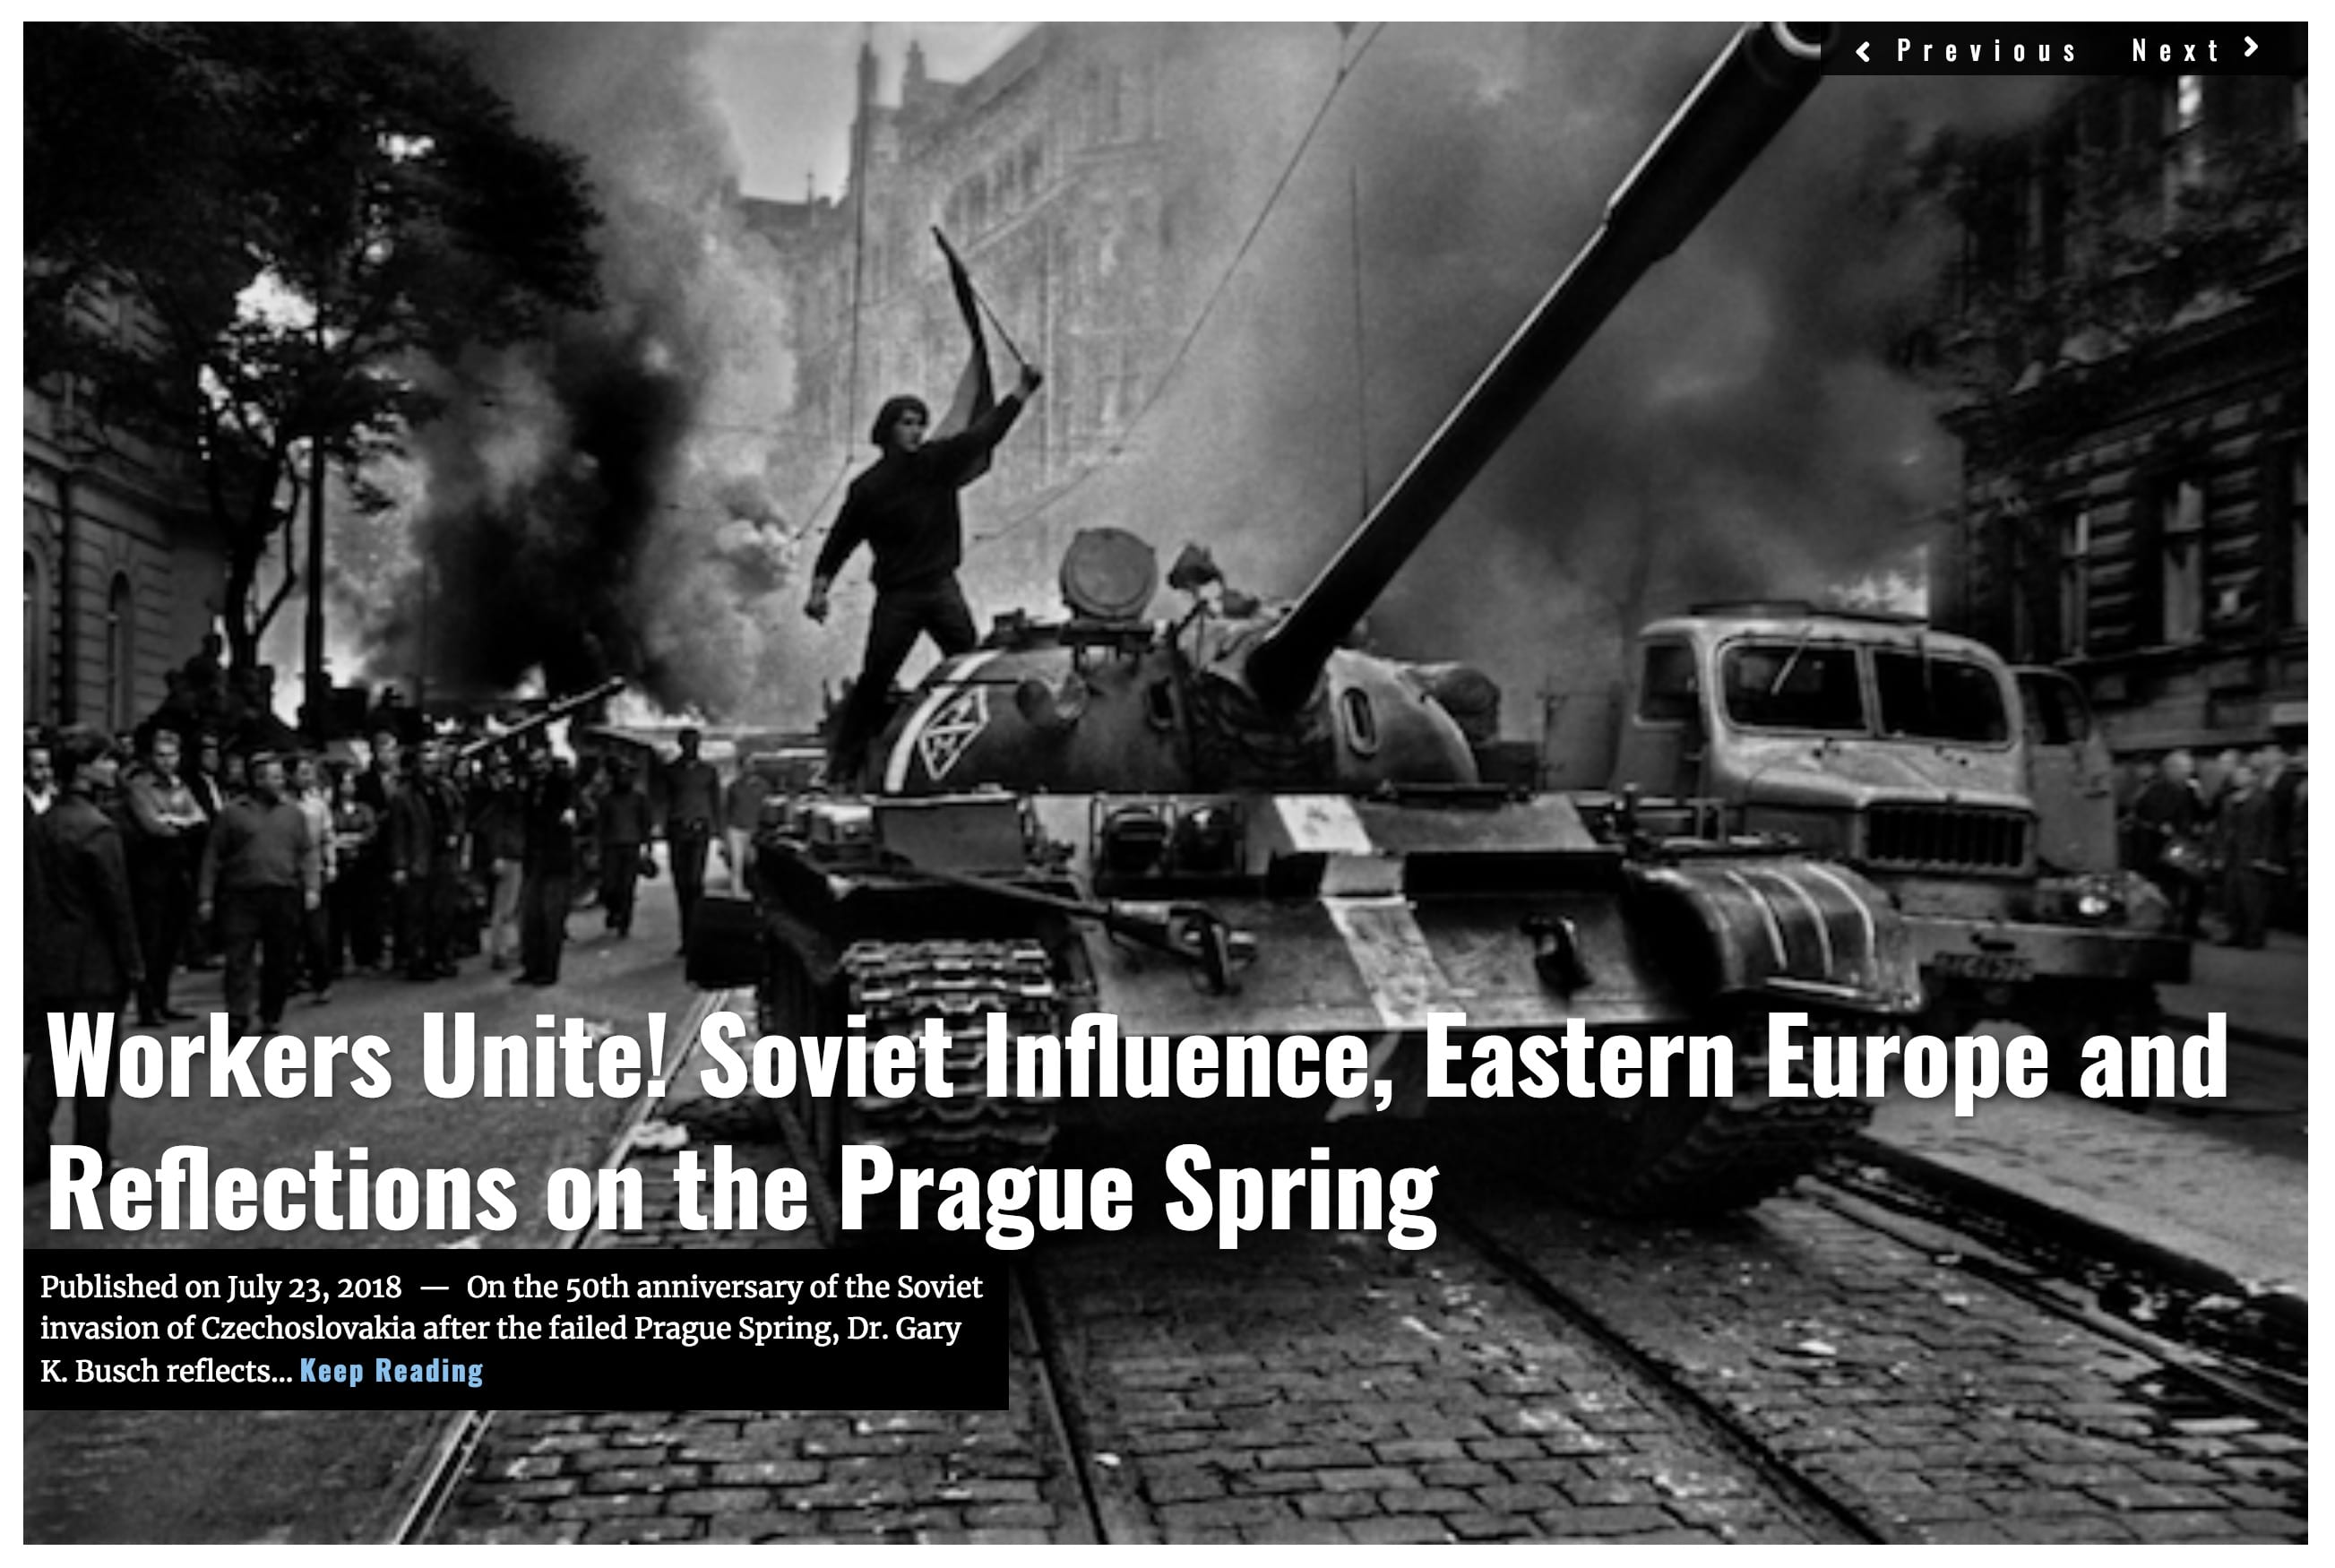 Image Lima Charlie News Headline Prague Spring JUL 23 2018